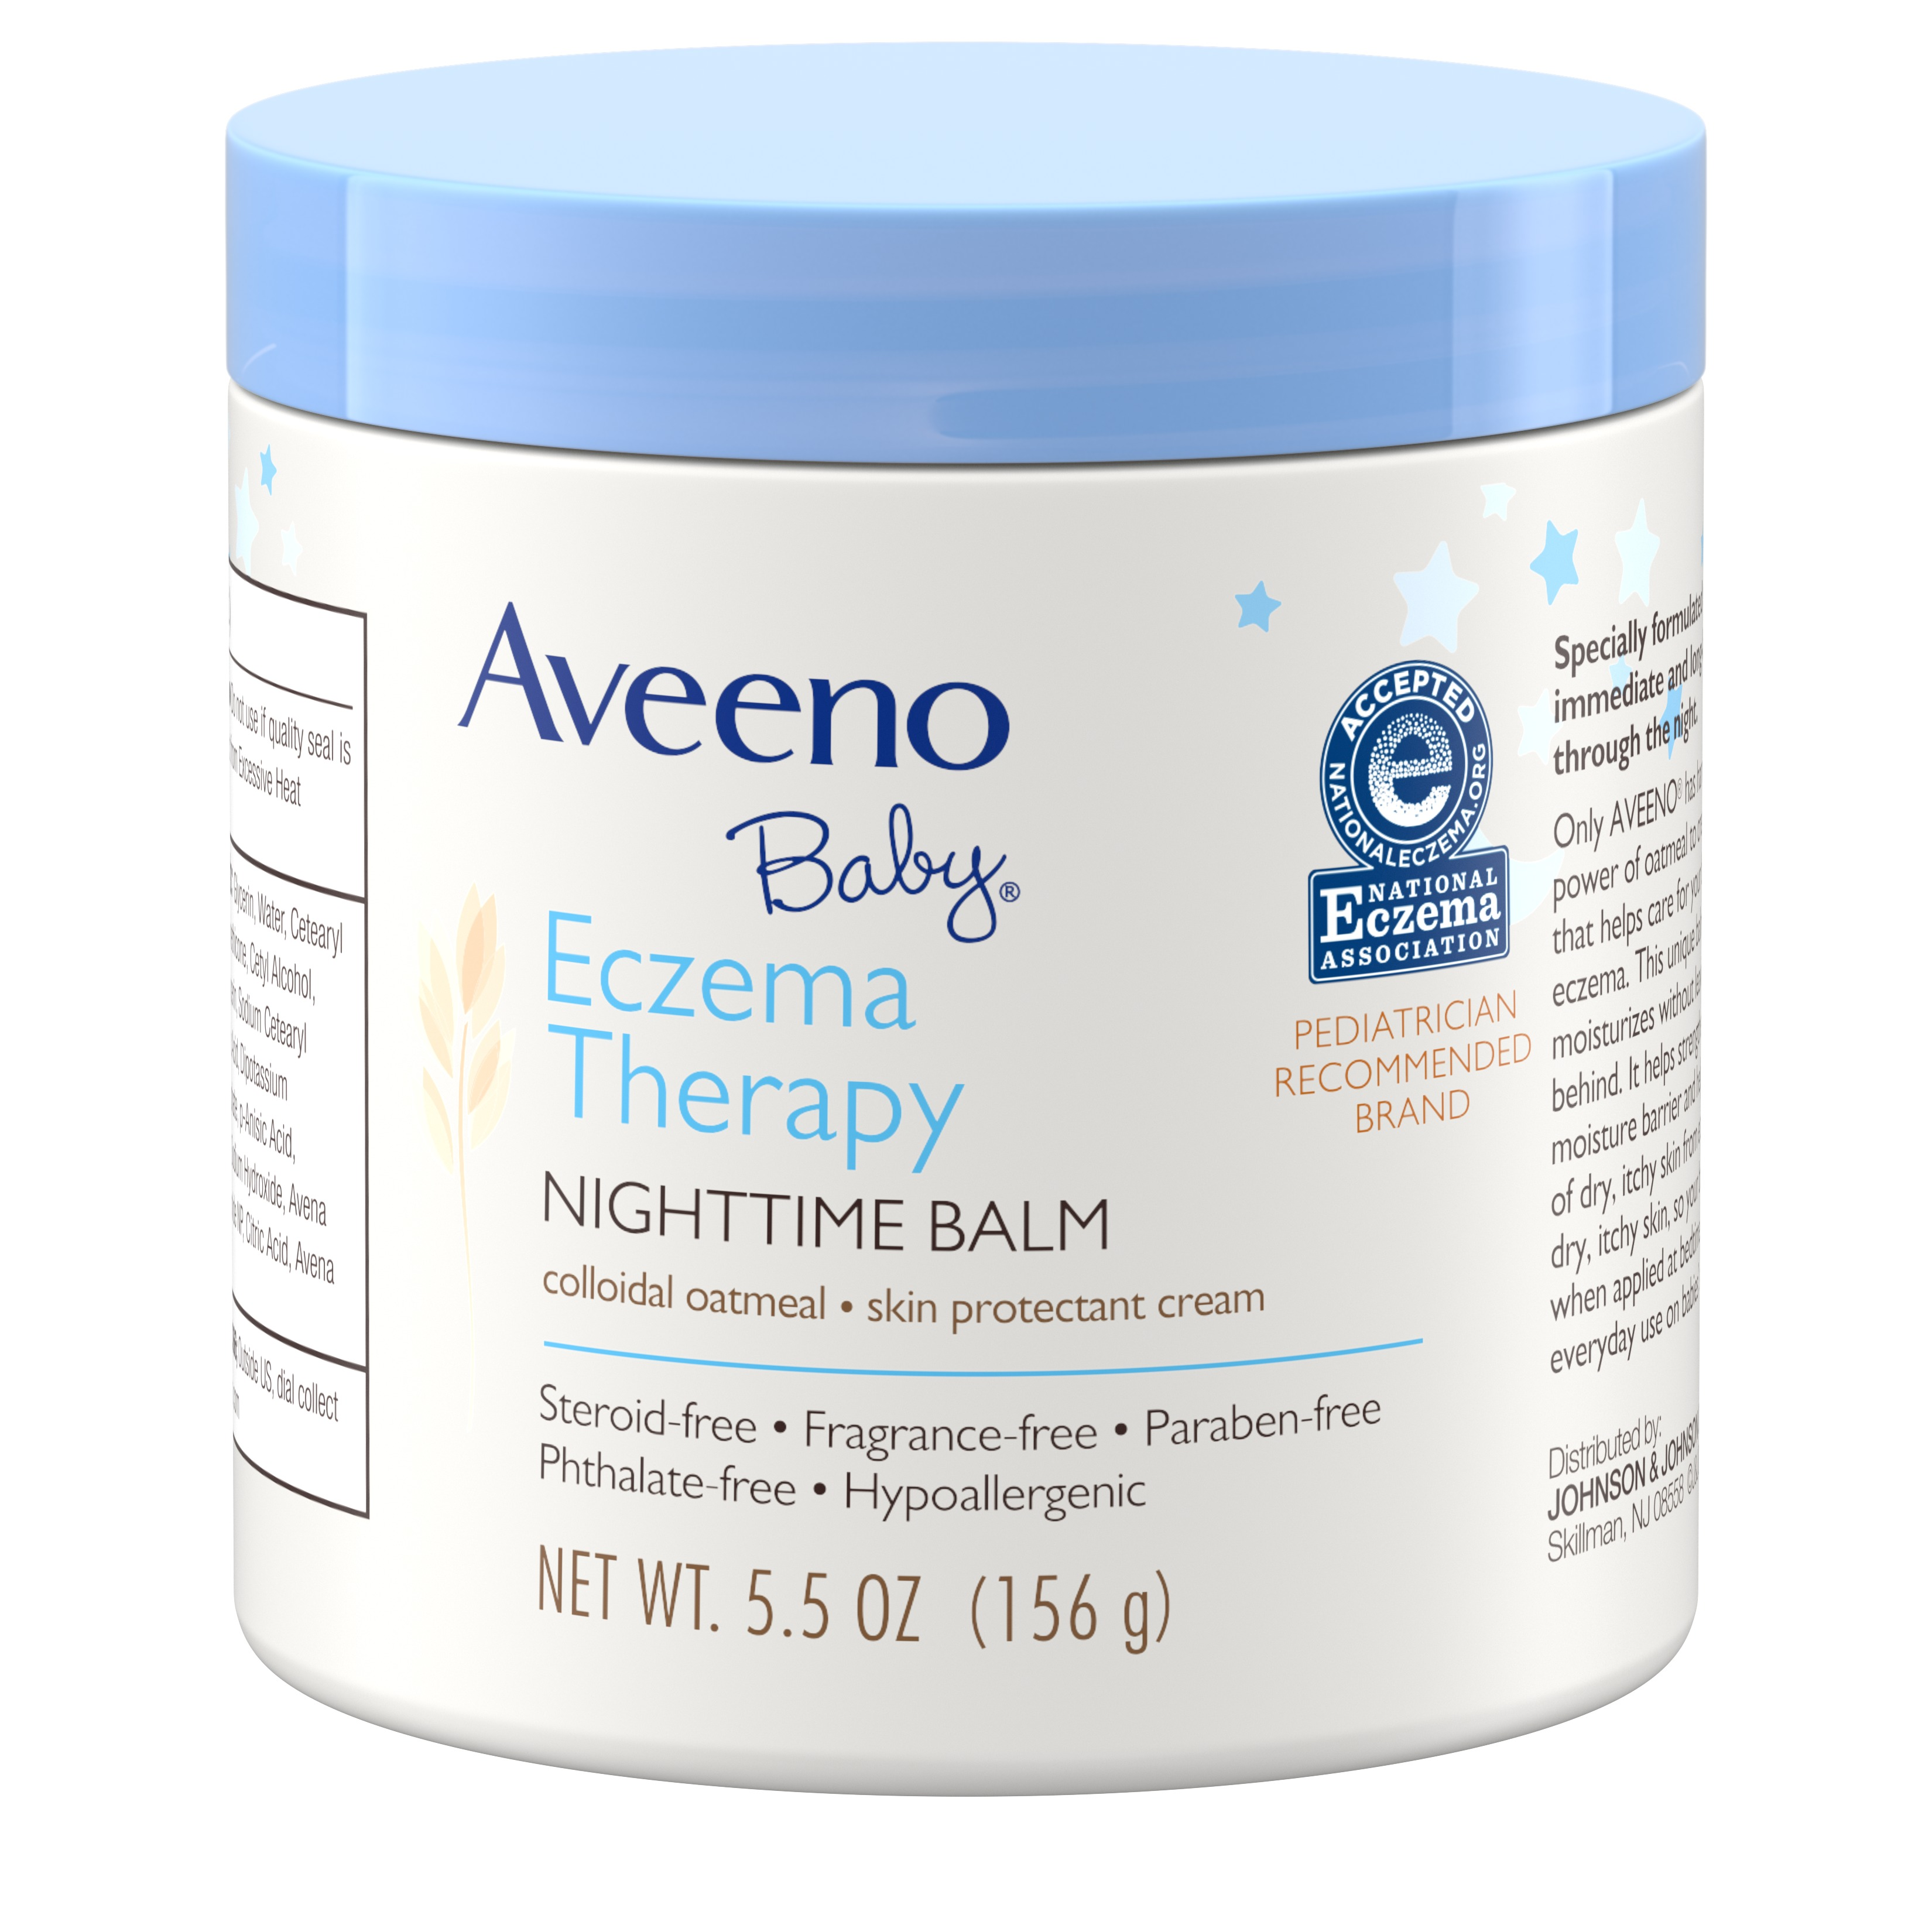 Aveeno Baby Eczema Therapy Nighttime Balm with Natural Oatmeal, 5.5 oz